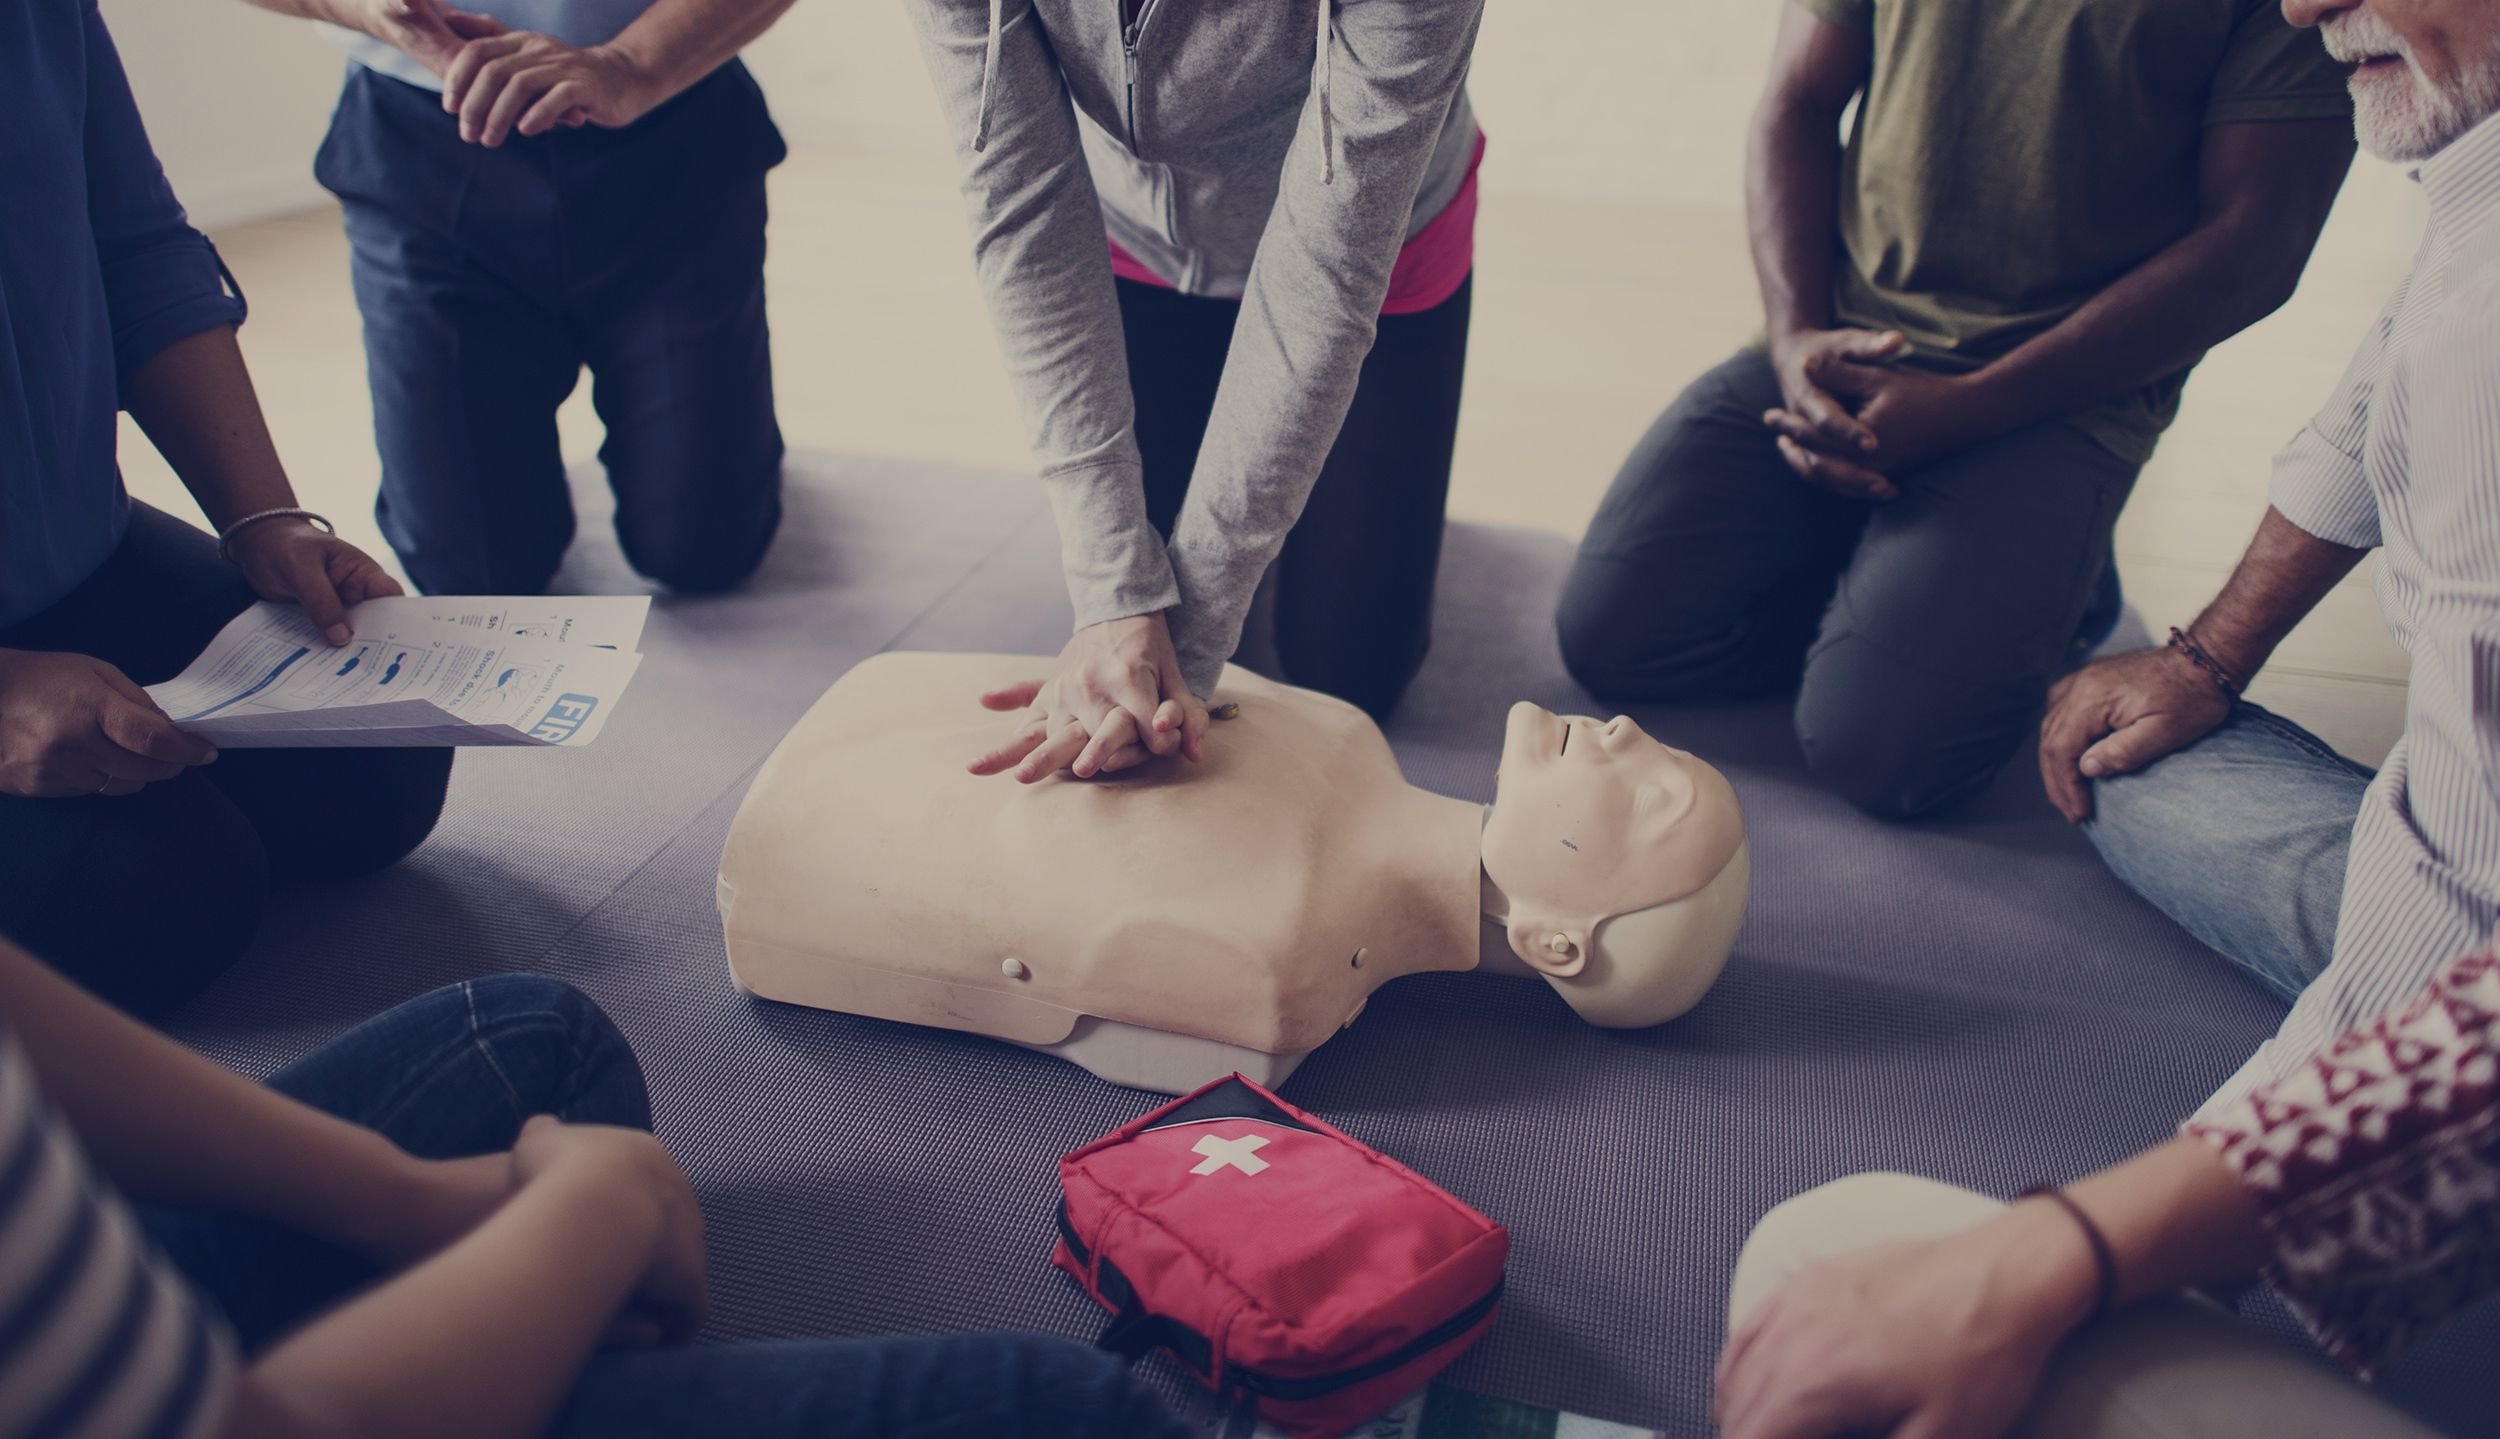 Cpr certification in new york ny ny metro cpr cpr certification xflitez Choice Image